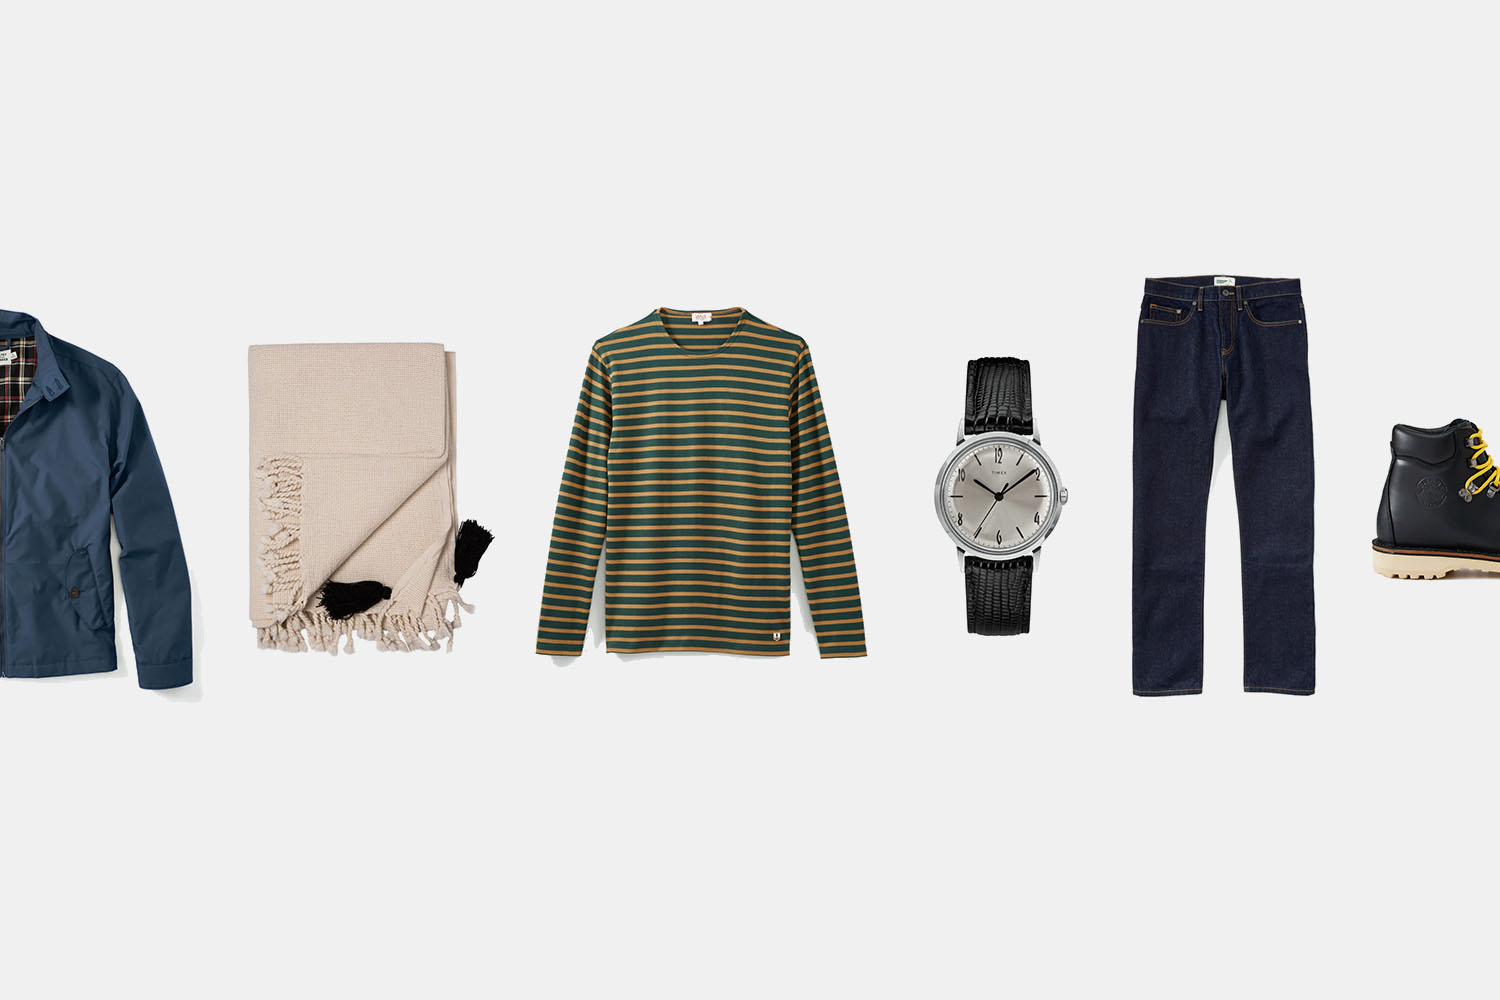 Huckberry winter clearance sale on men's goods